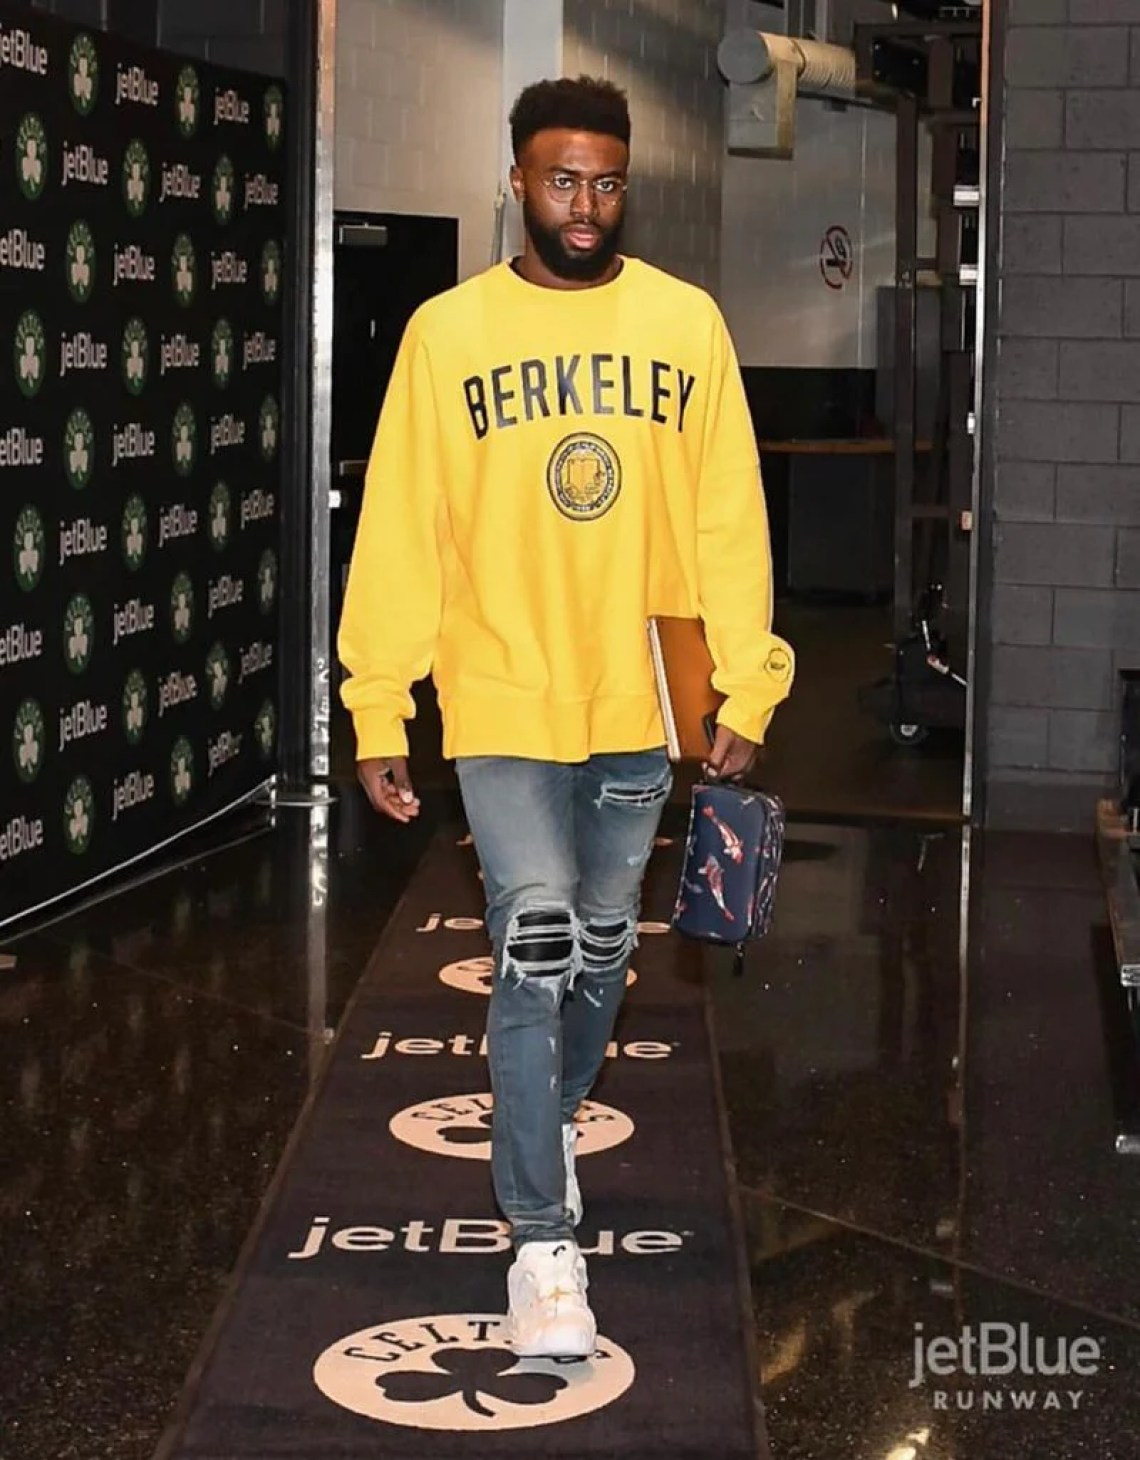 Jaylen Brown with the retro Berkeley crewneck and AMIRI MX1 Leather Patch jeans.